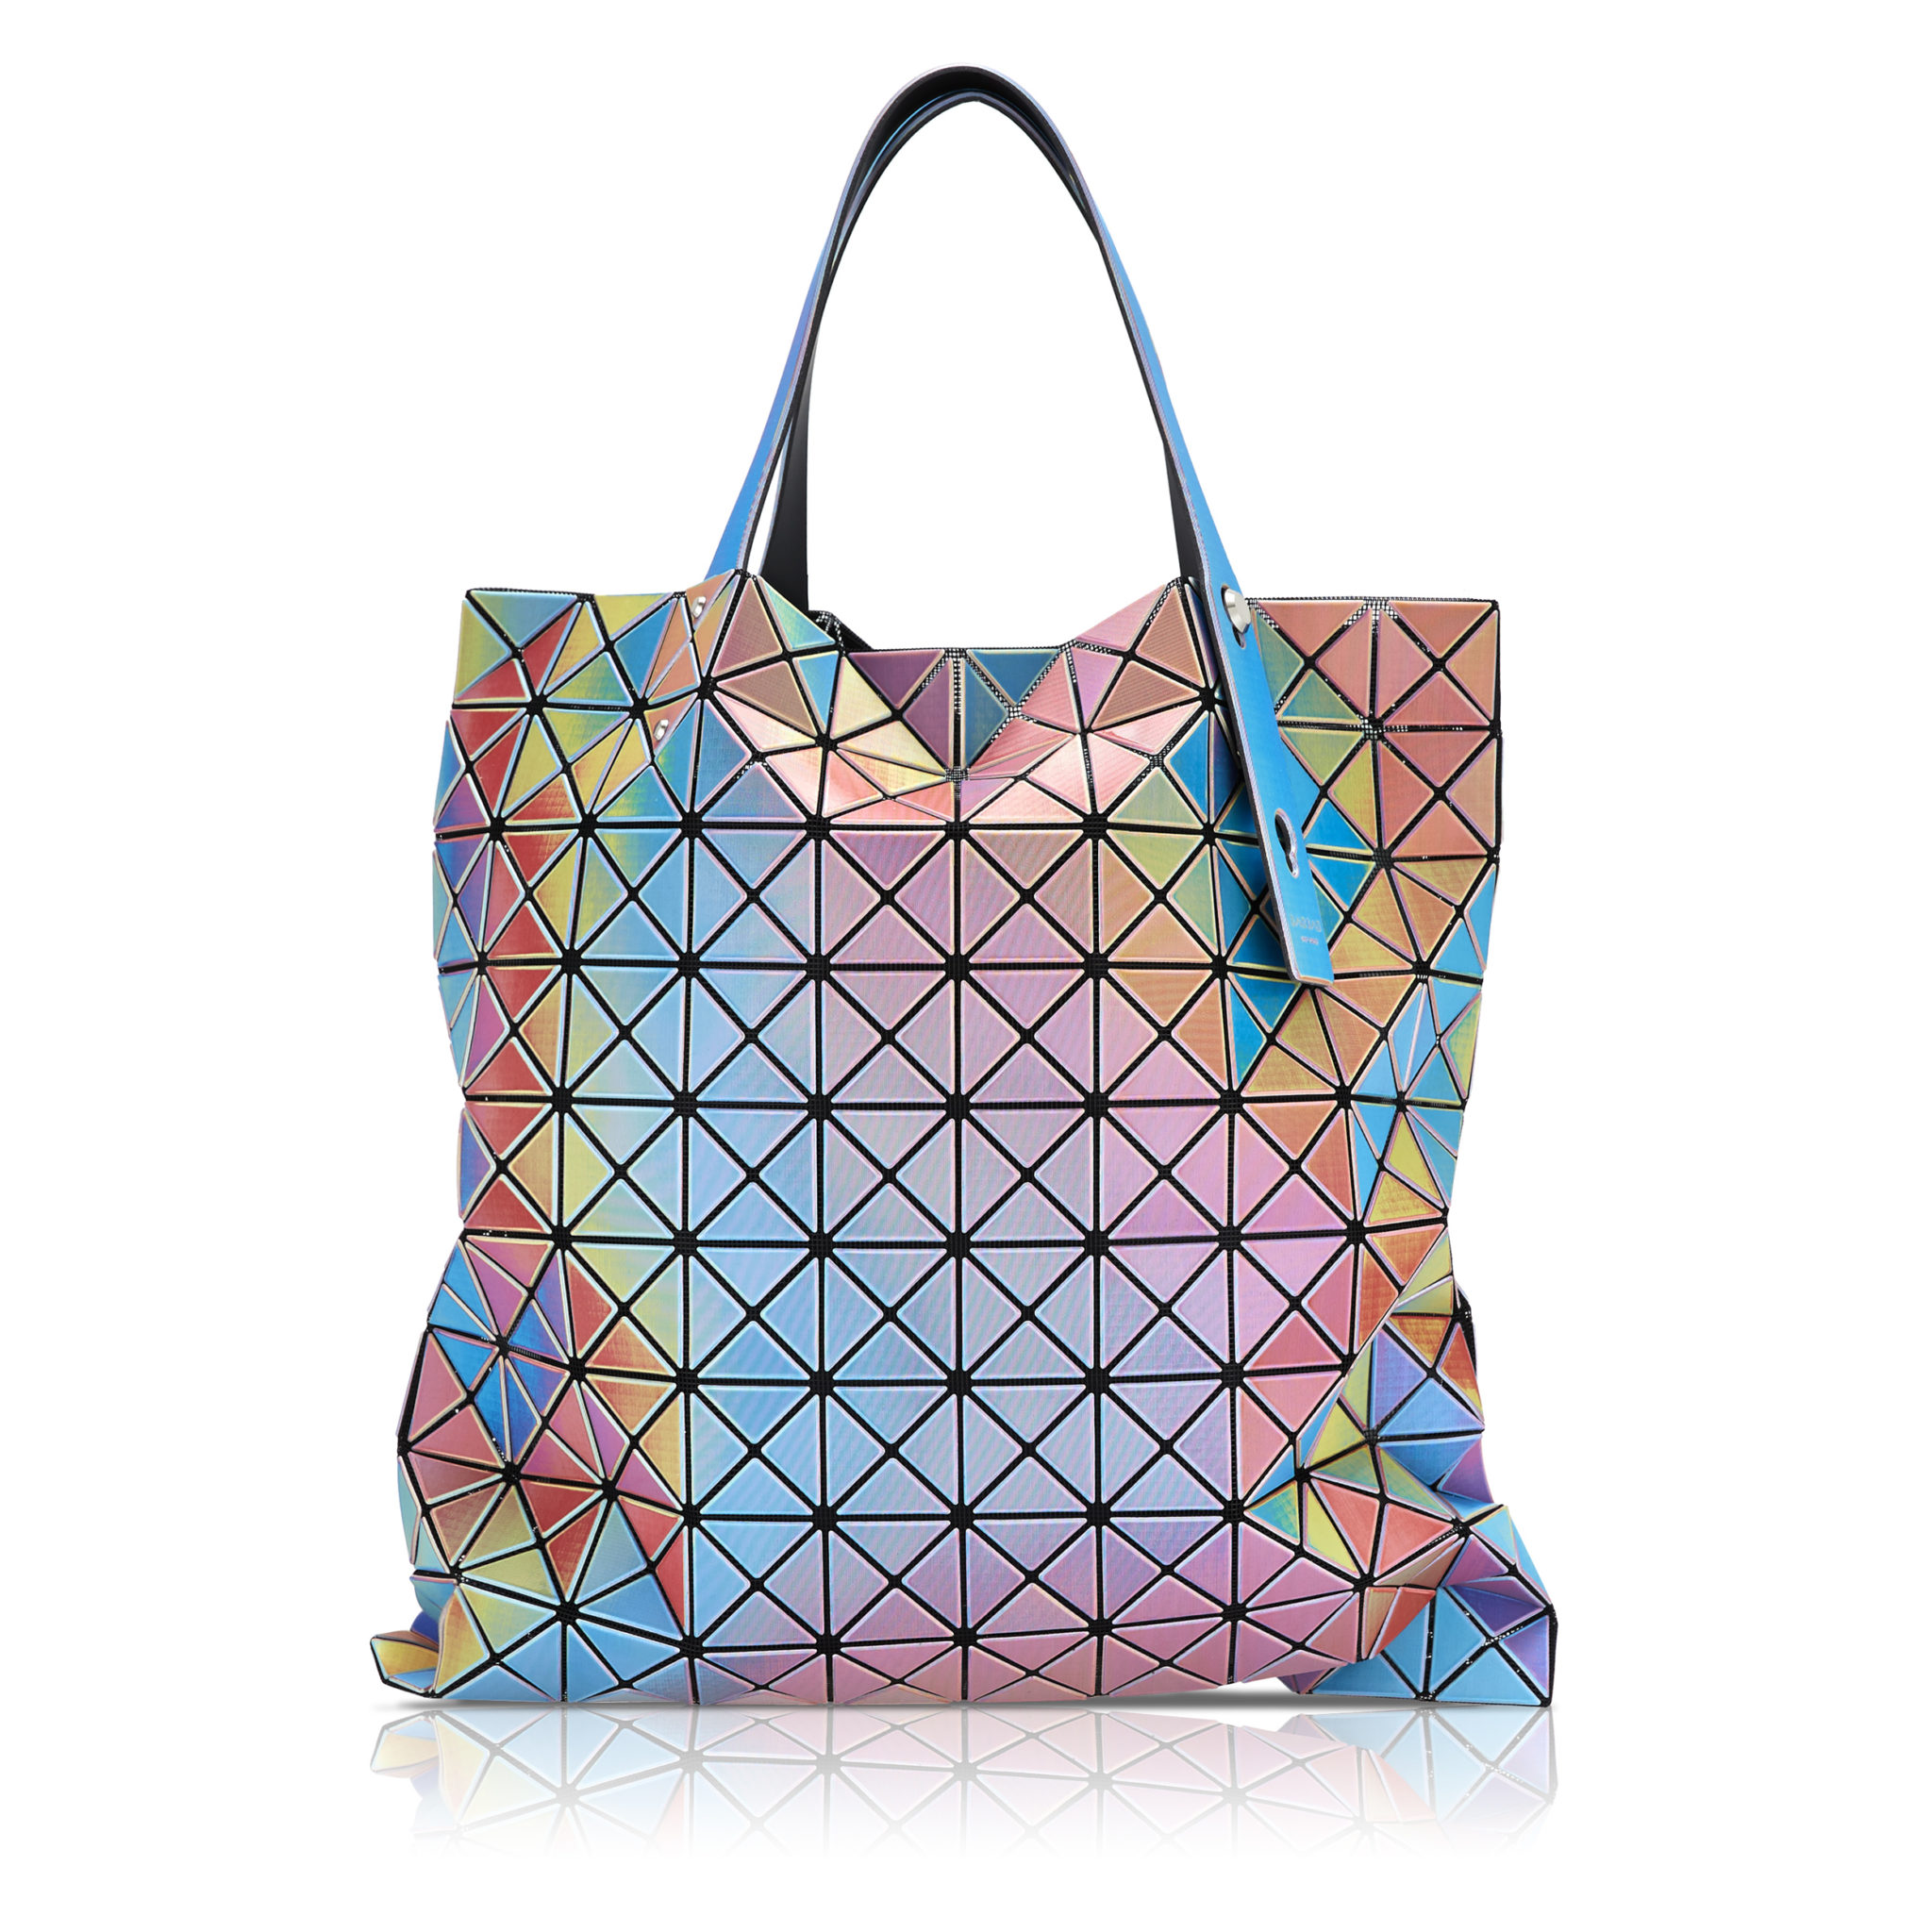 e-commerce product photograph of a tote bag on white with reflection